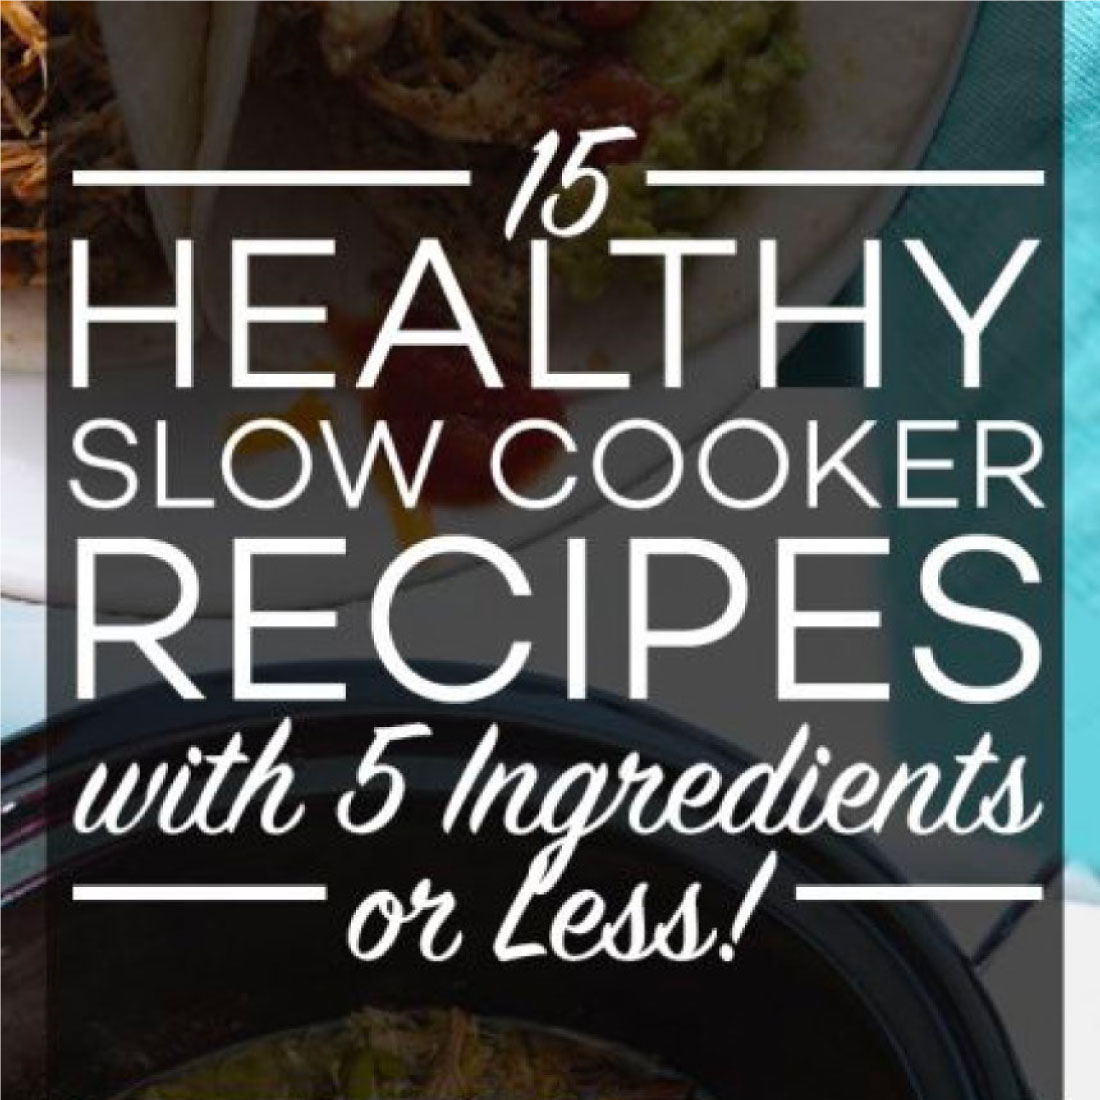 15 Healthy Crockpot Recipes using 5 Ingredients or Less